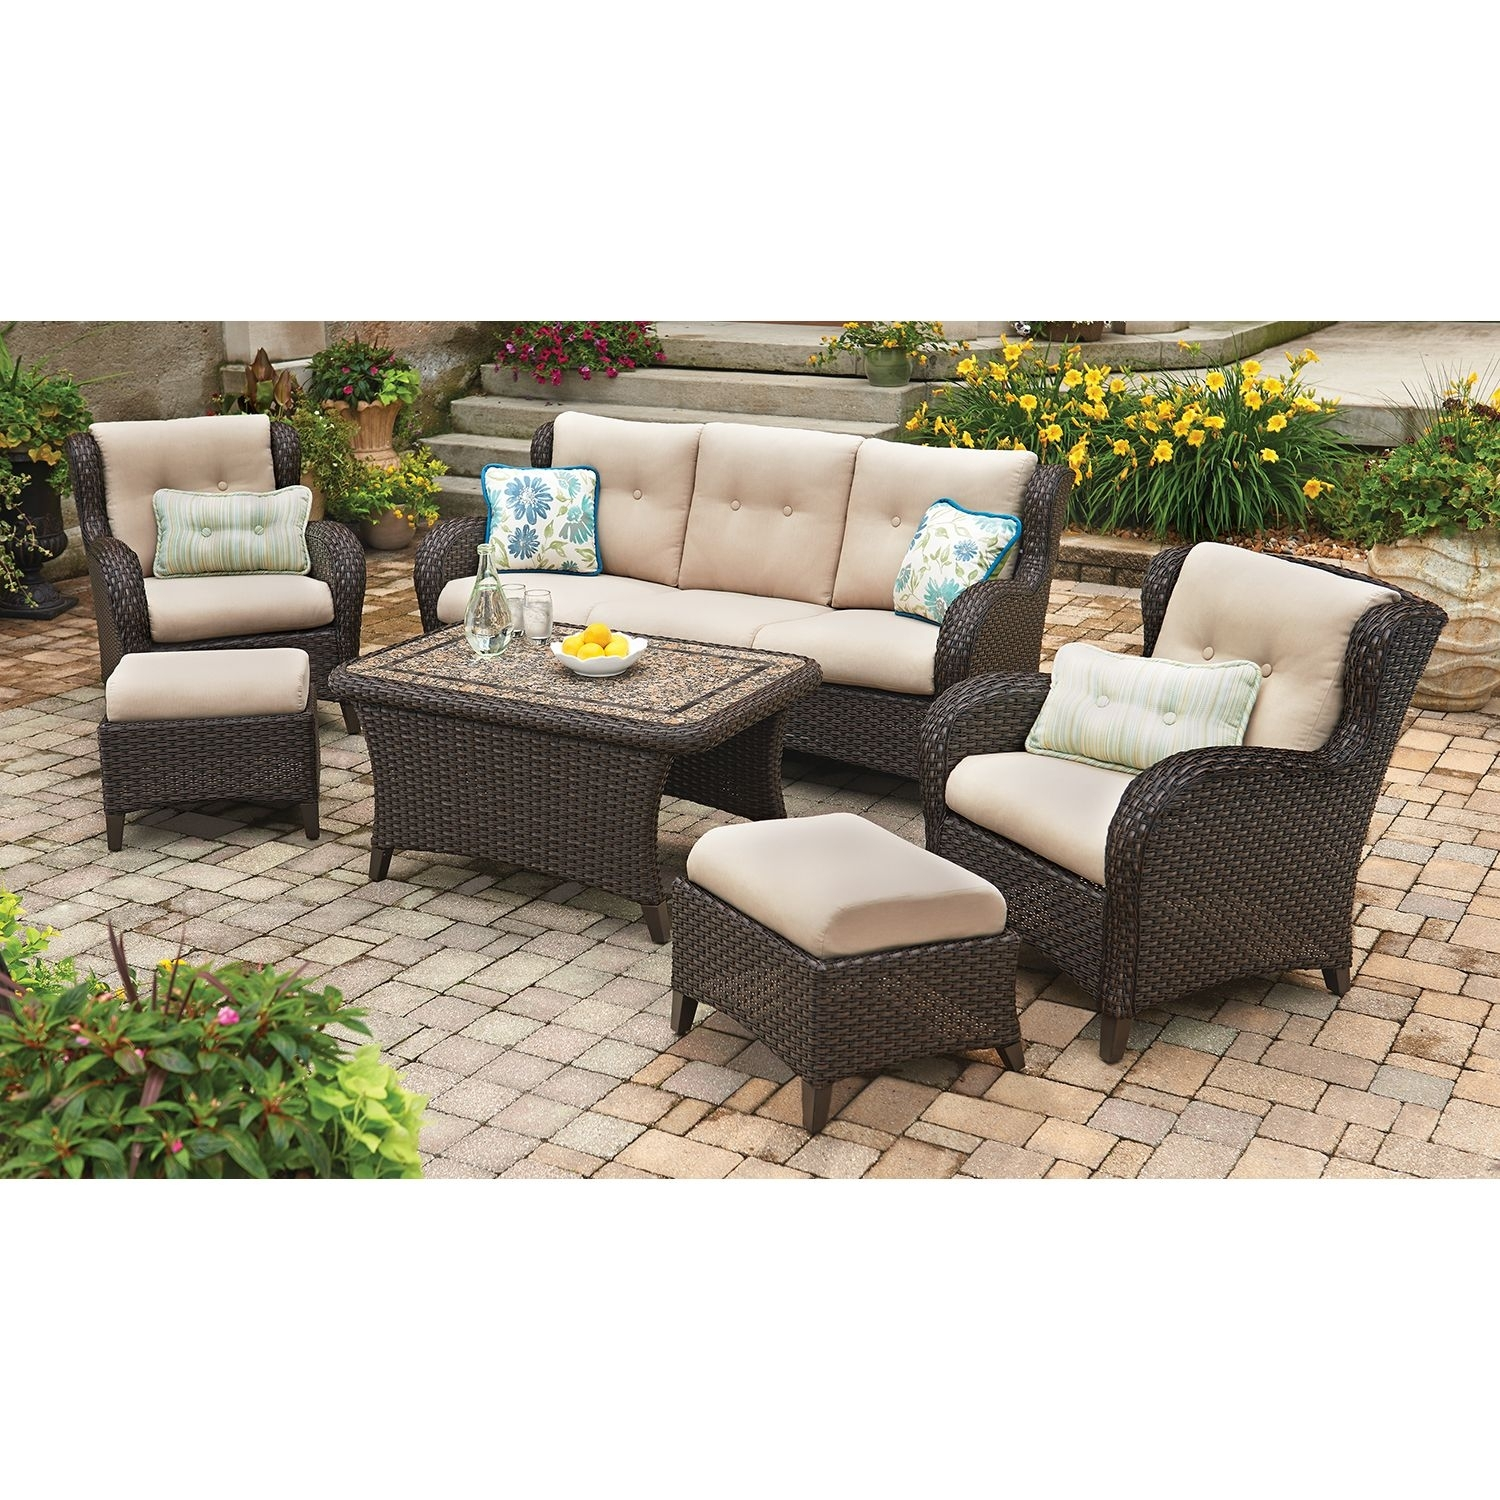 Member's Mark® Heritage 6-Piece Deep Seating Set With Premium inside Sectional Sofas At Sam's Club (Image 8 of 15)